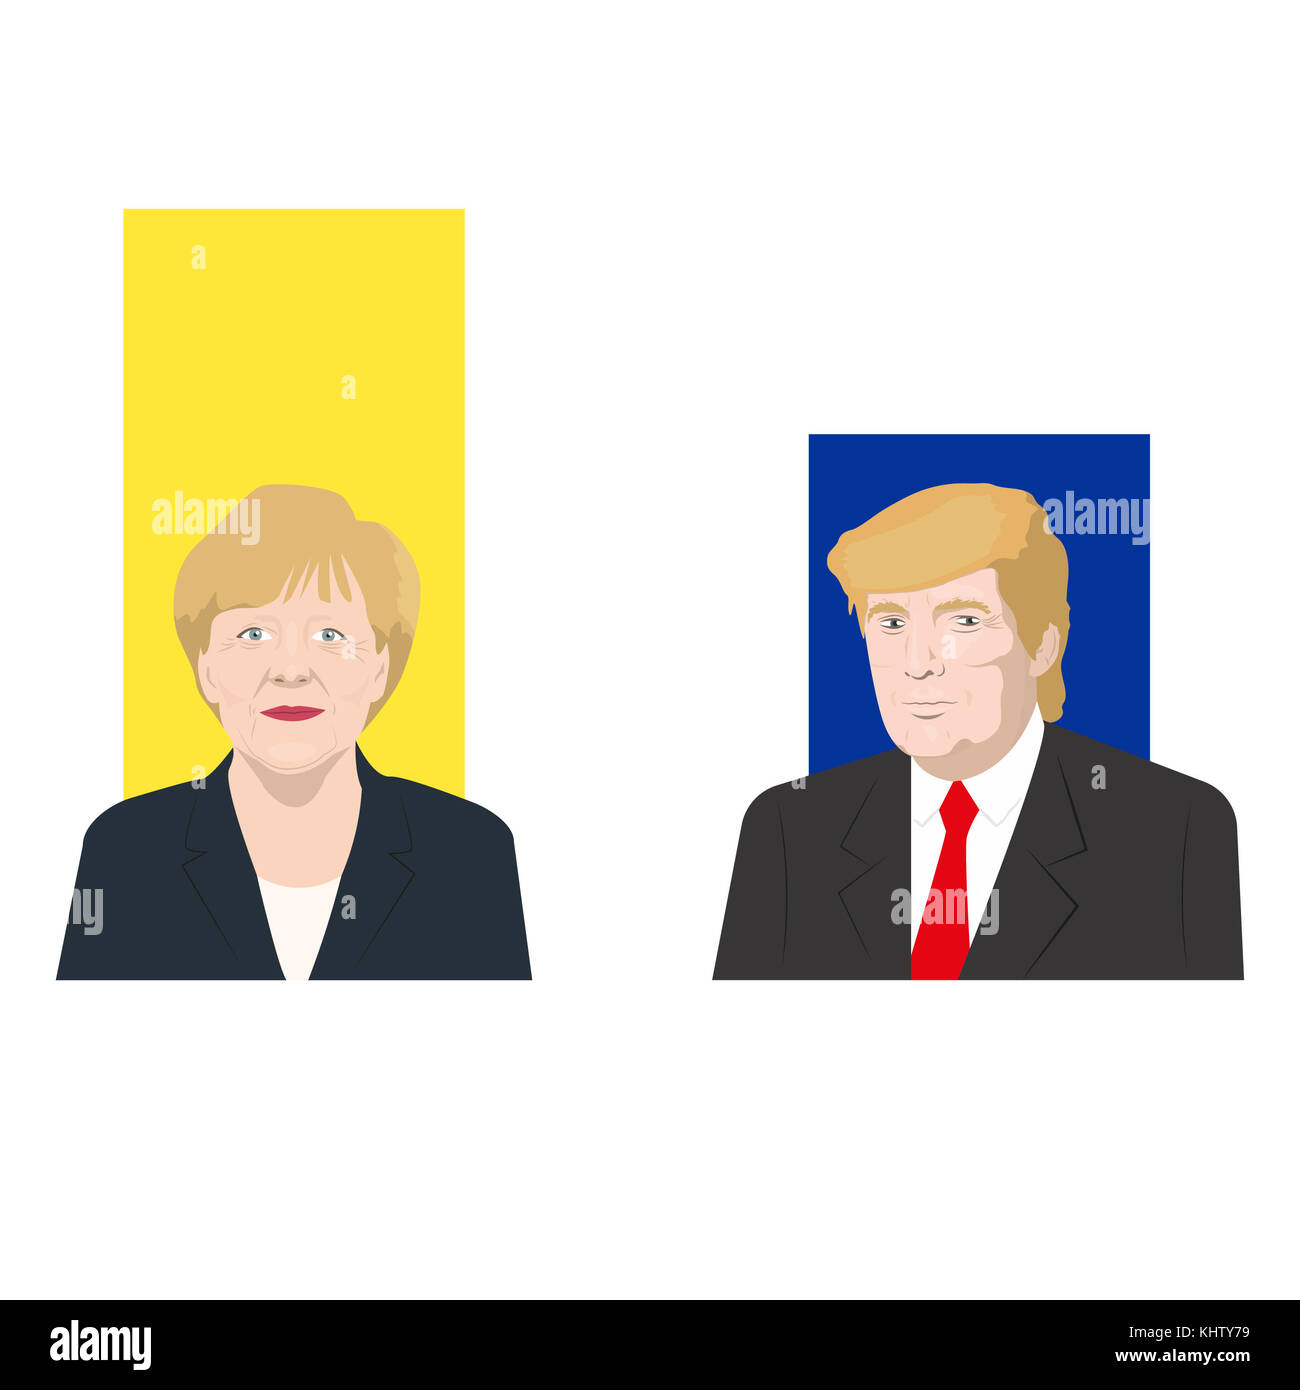 November 19.11.2017. Editorial illustration is showing a rating of popularity of well-known politicians Donald Trump - Stock Image